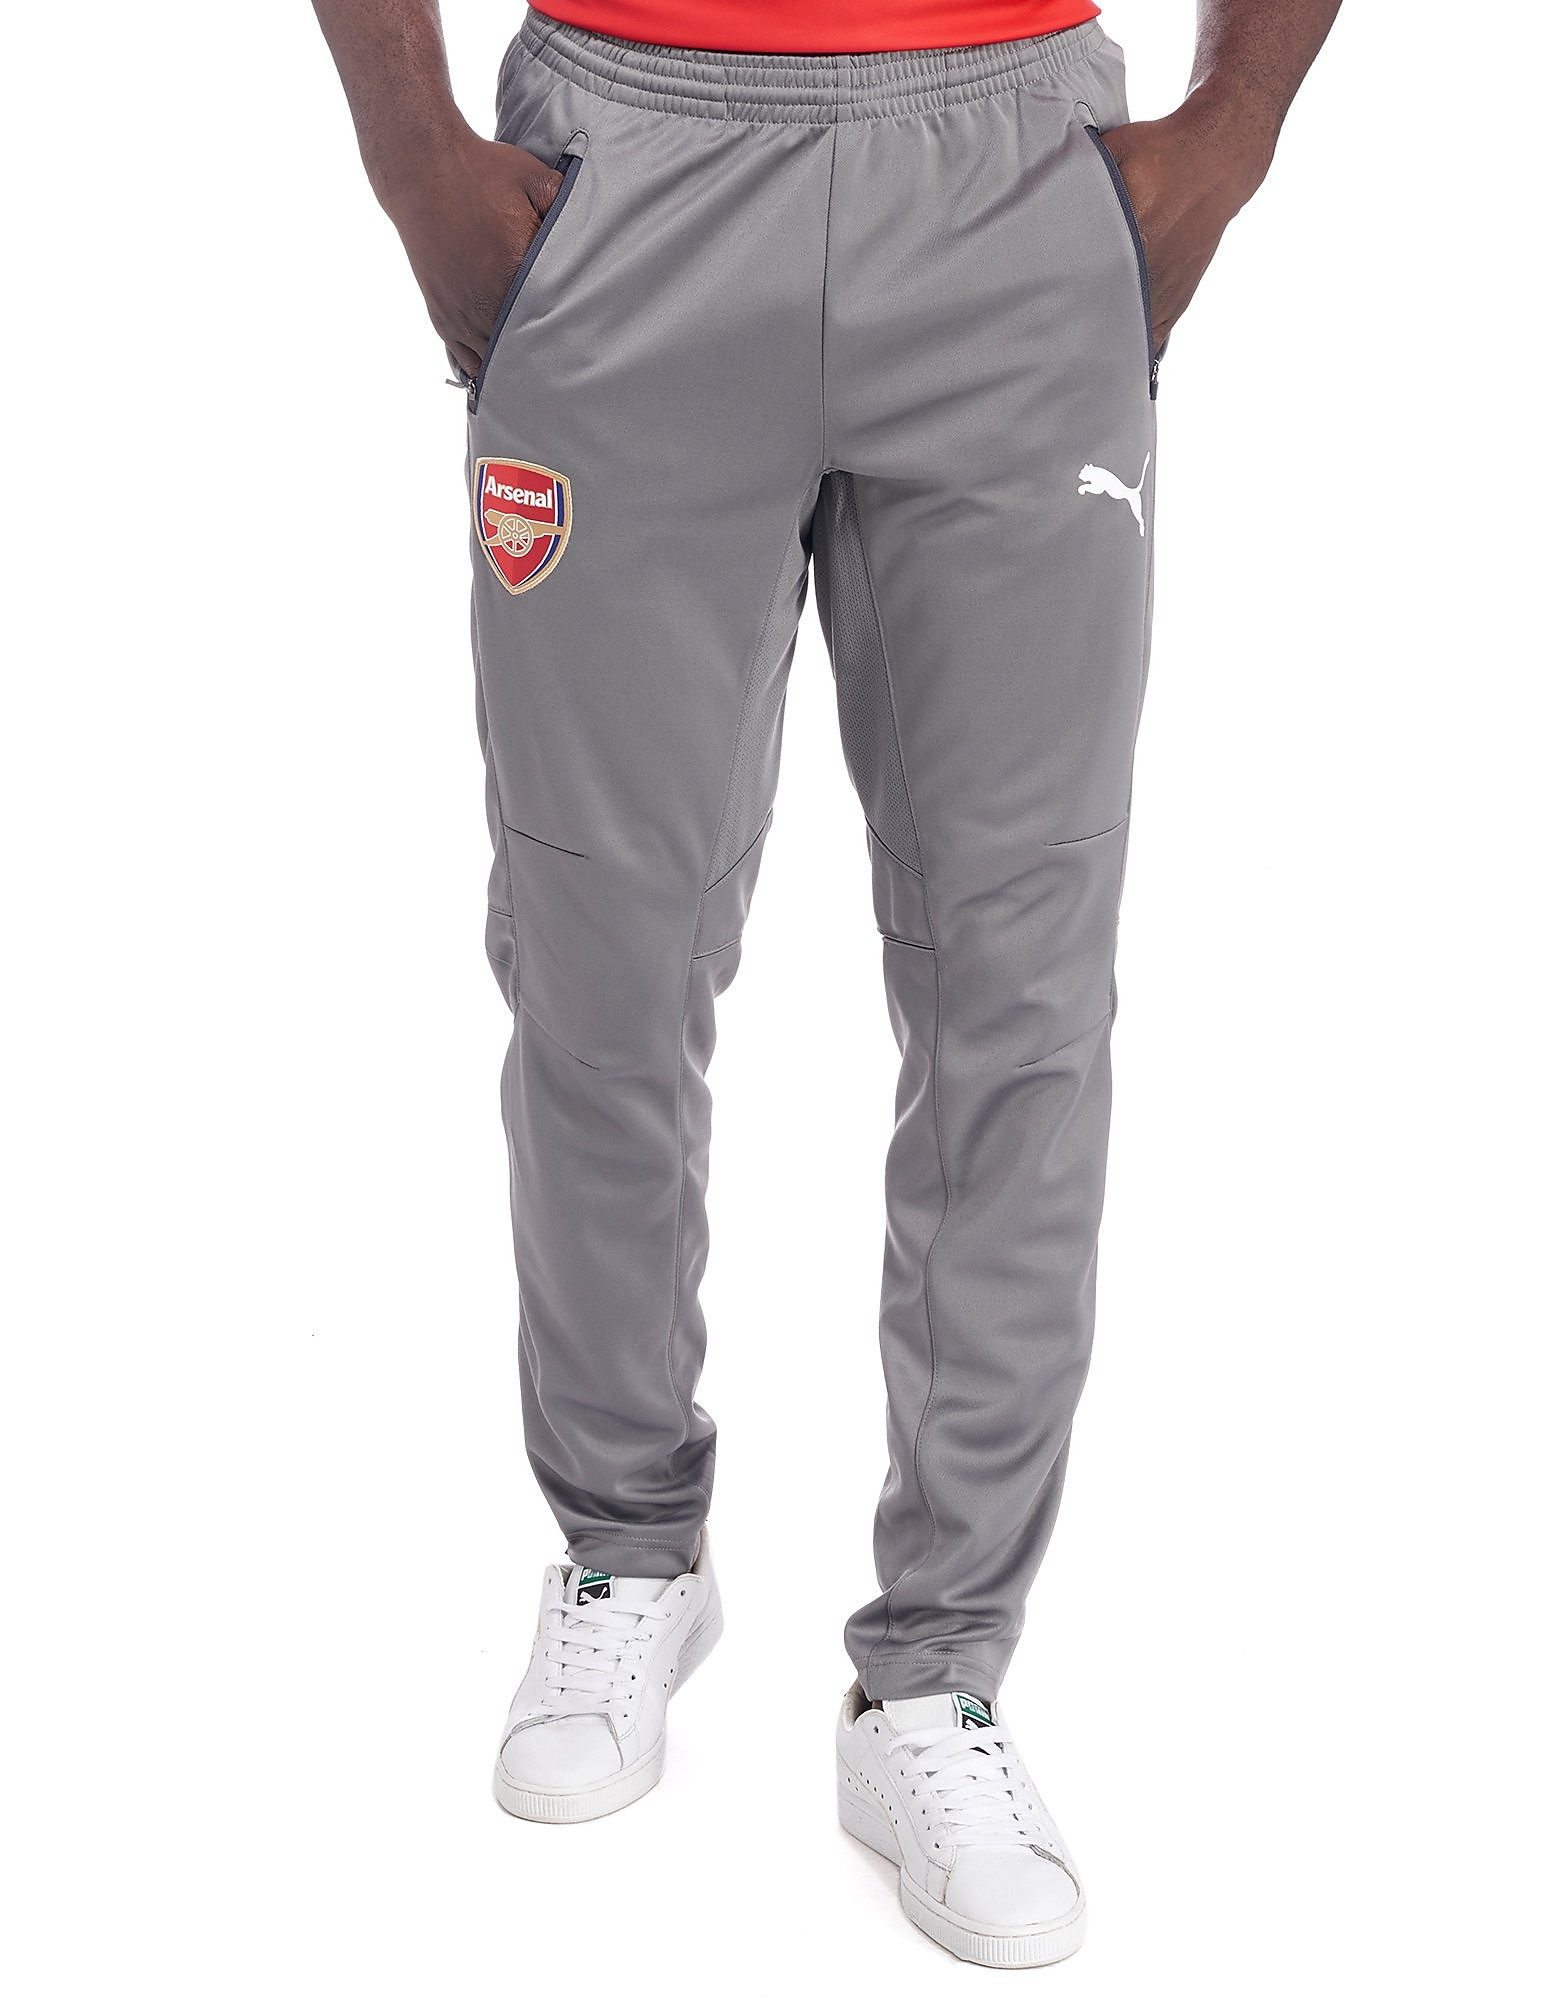 PUMA Arsenal FC 2016/17 Training Pants